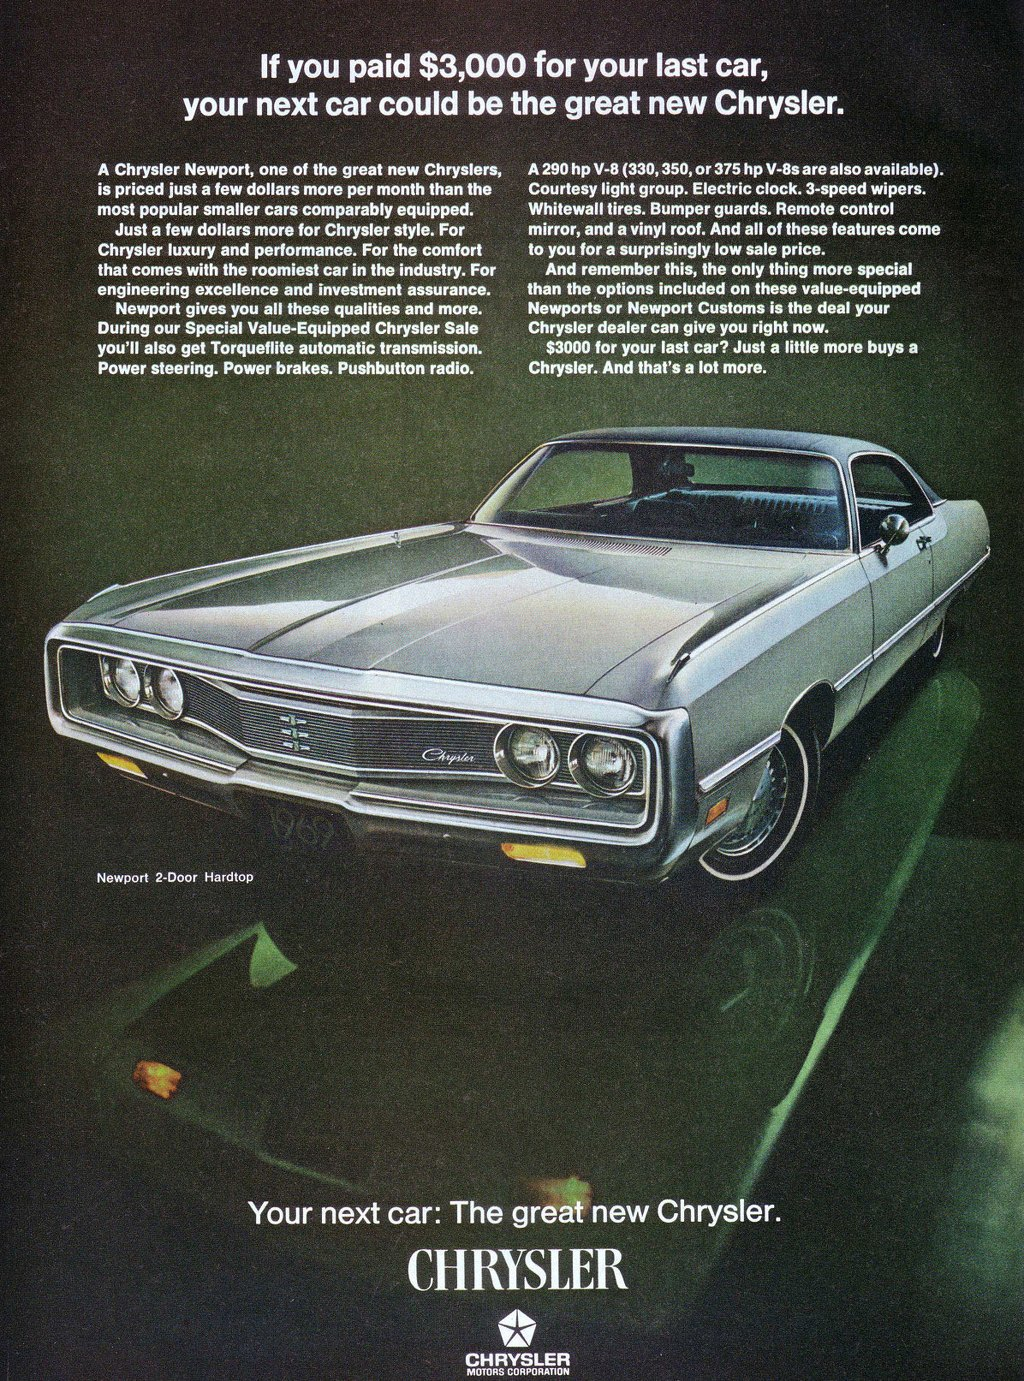 If you paid $3,000 for your last car, your next car could be the great new Chrysler.  A Chrysler Newport, one of the great new Chryslers, is priced just a few dollars more per month than the most popular smaller cars comparably equipped. Just a few dollars more for Chrysler style. For Chrysler luxury and performance. For the comfort that comes with the roomiest car in the industry. For engineering excellence and investment assurance. Newport gives you all these qualities and more. During our Special Value-Equipped Chrysler Sale you'll also get Torqueflite automatic transmission. Power steering. Power brakes. Pushbutton radio.  A 290 hp V-8 (330, 350, or 375 hp V-8s are also available). Courtesy light group. Electric clock. 3-speed wipers. Whitewall tires. Bumper guards. Remote control mirror, and a vinyl roof. And all of these features come to you for a surprisingly low sale price. And remember this, the only thing more special than the options included on these value-equipped Newports or Newport Customs is the deal your Chrysler dealer can give you right now. $3000 for your last car? Just a little more buys a Chrysler. And that's a lot more.   Newport 2-Door Hardtop  Your next car: The great new Chrysler. CHRYSLER  41. ■■■ CHRYSLER MOTORS CORPORATION